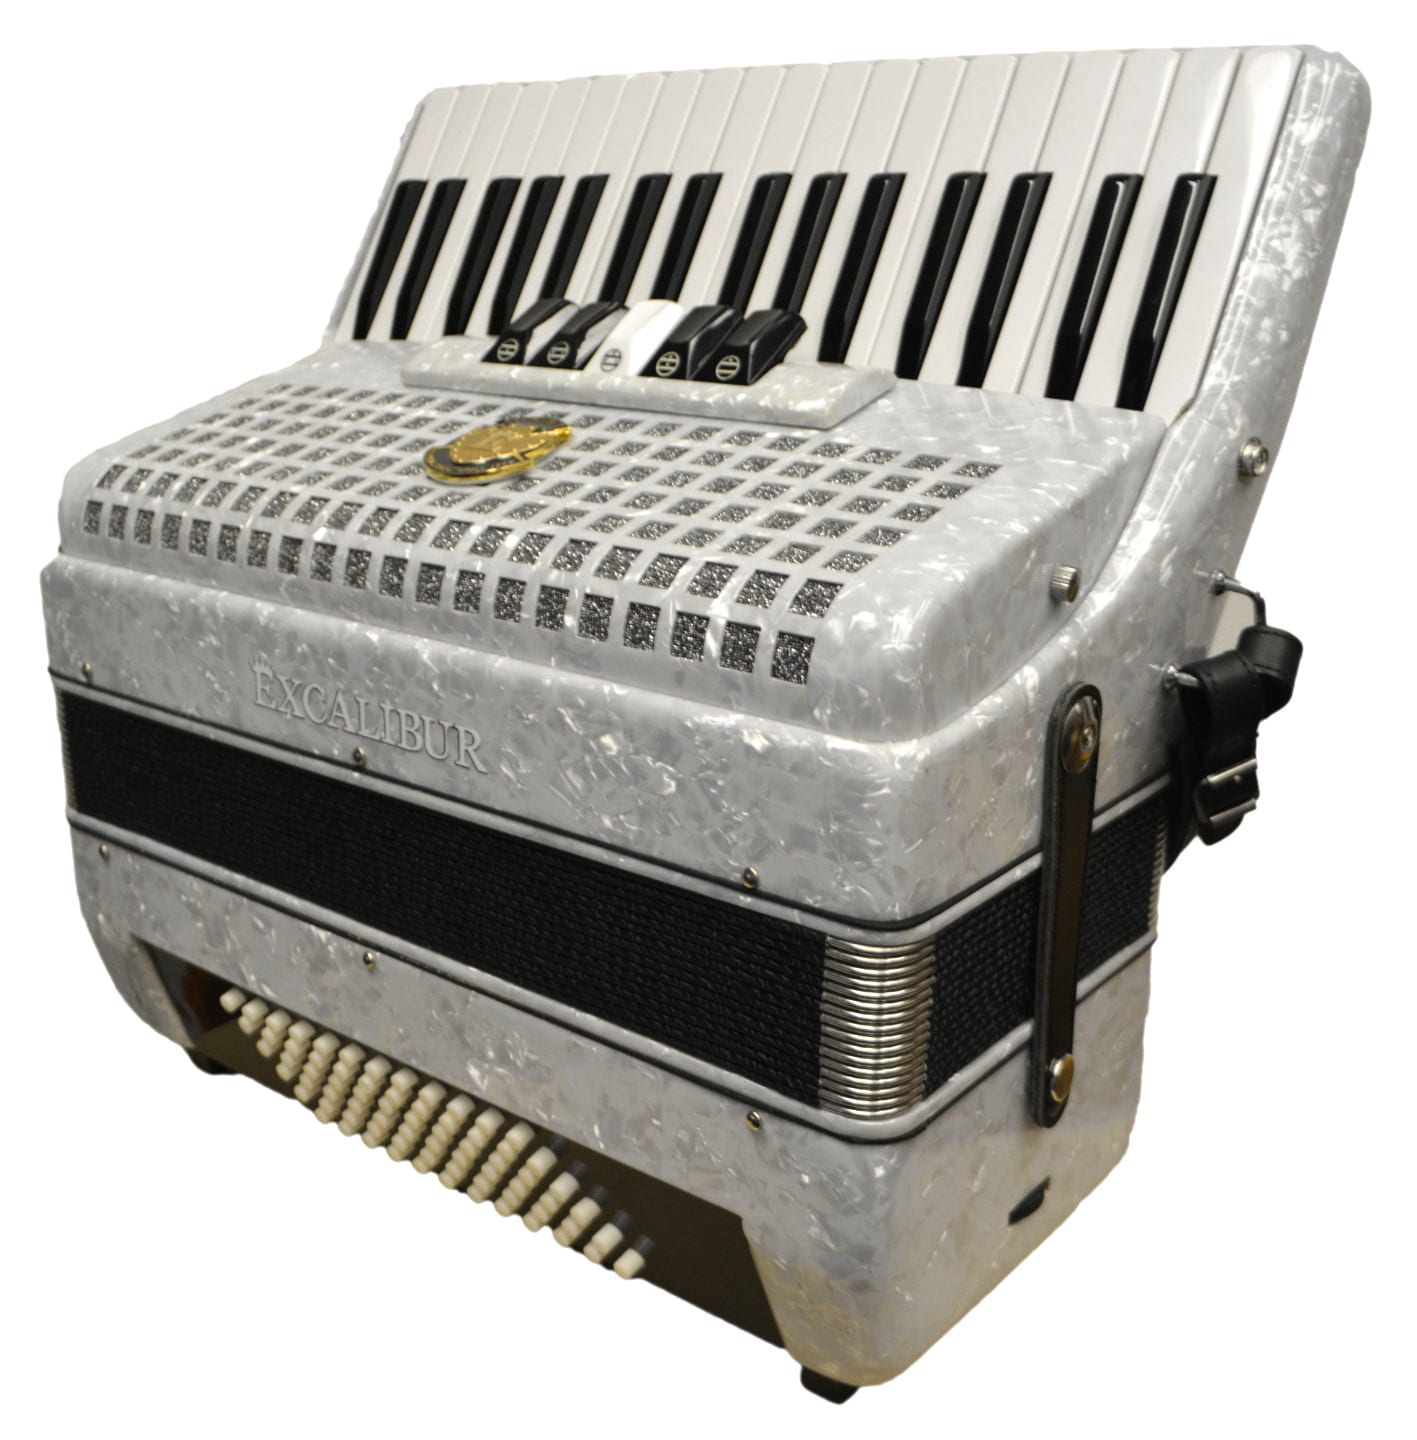 Excalibur Super Classic 72 Bass Accordion - Pearl White